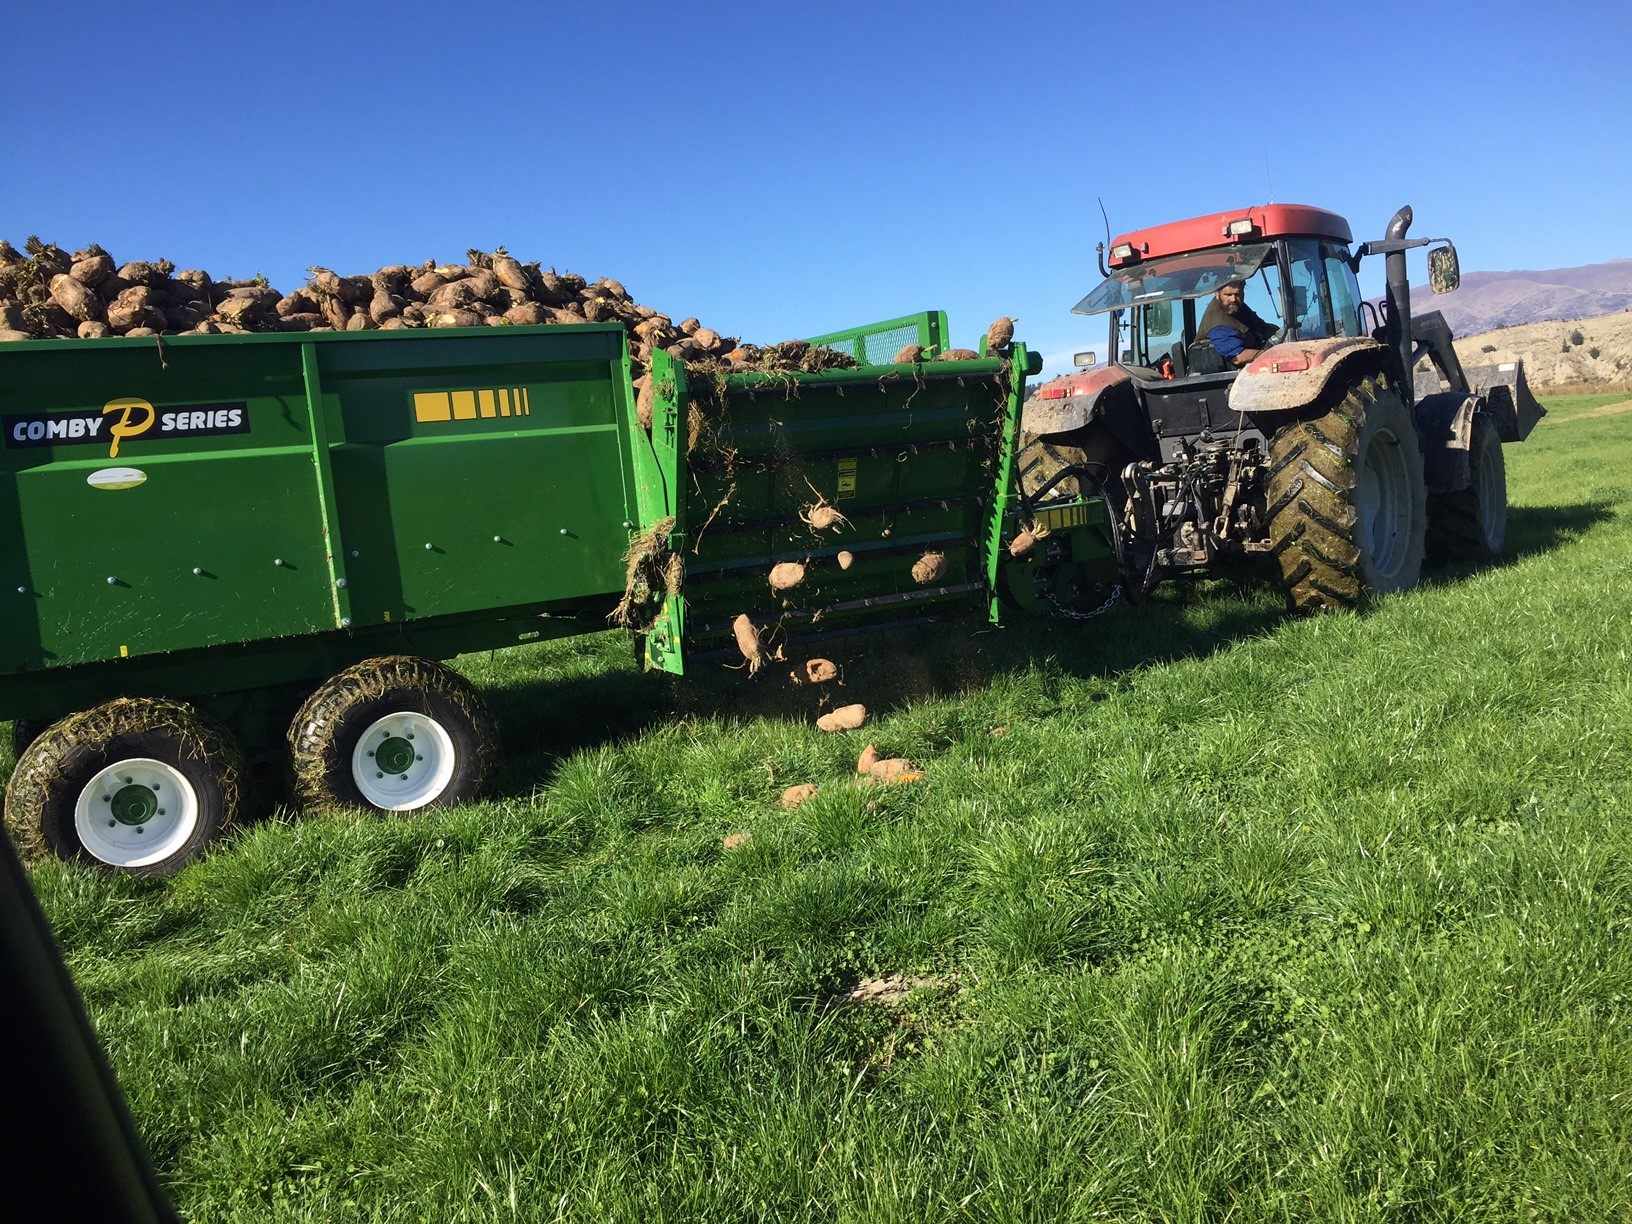 Comby PR Feeding out a load of Fodder beet.jpg